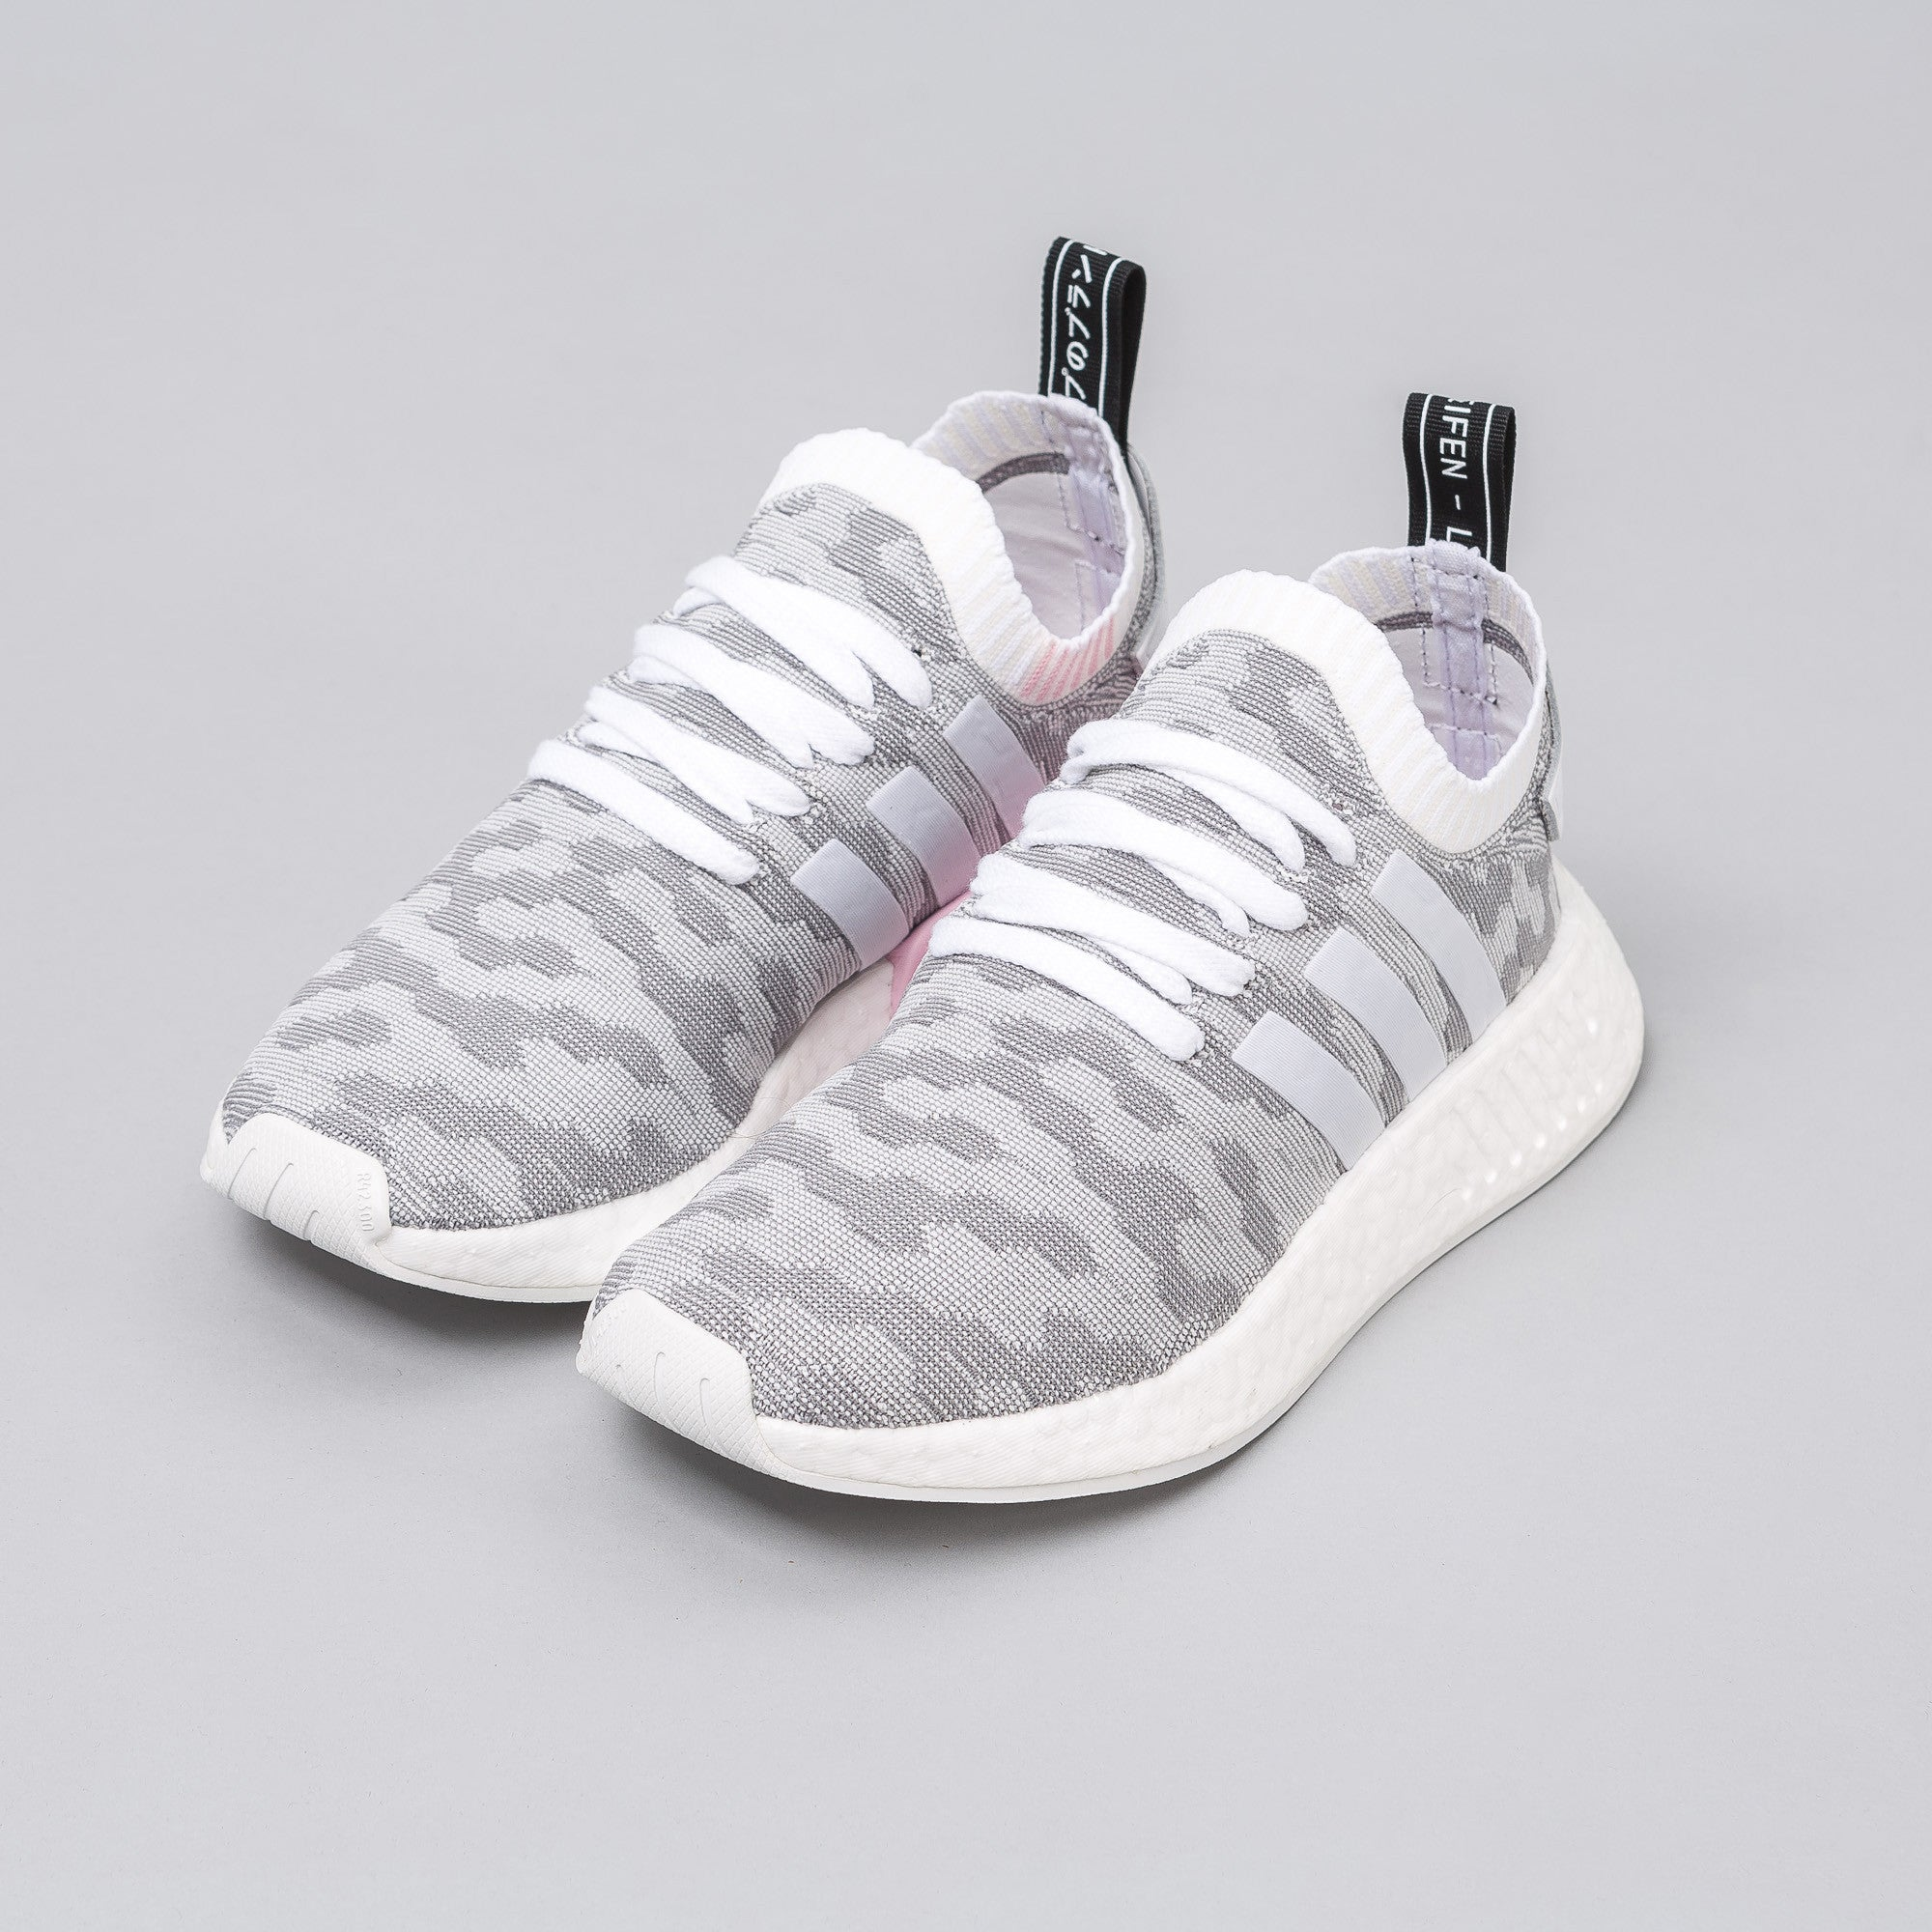 ab0ca3bb8 adidas nmd r2 pk womens adidas superstar shoes womens white Equipped ...